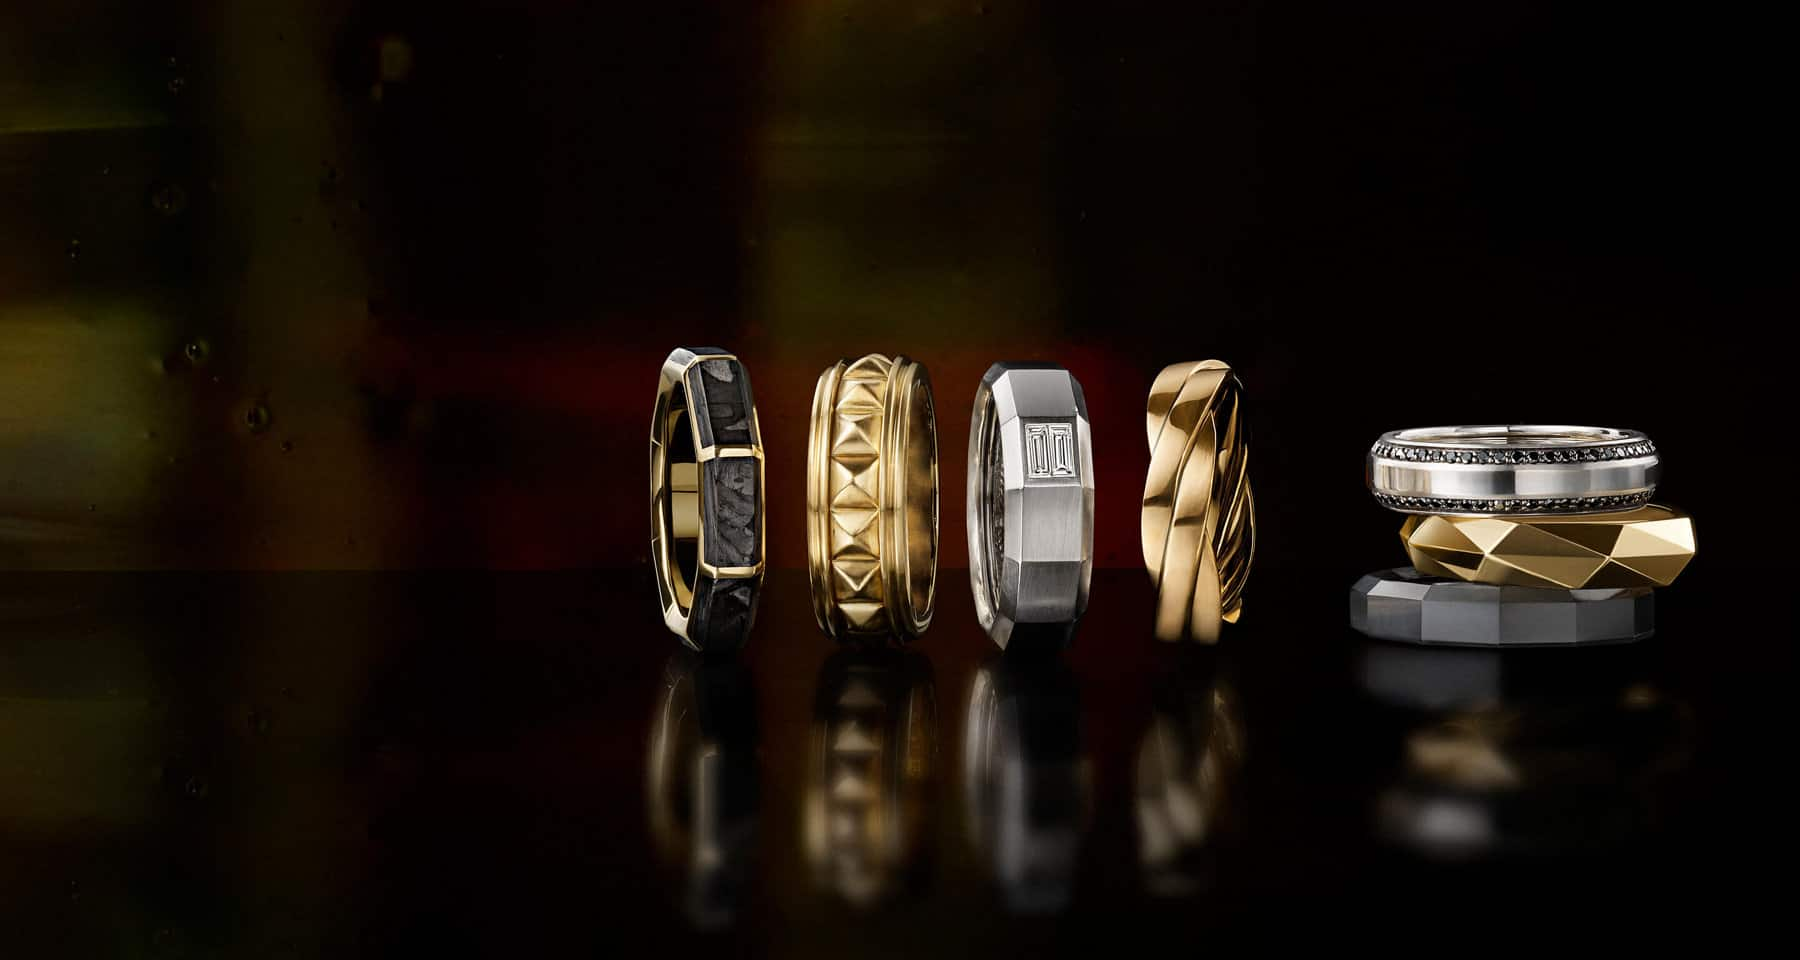 A color photo shows a vertical stack of three David Yurman men's bands to the right of a horizontal row of four David Yurman men's bands—all placed on a black reflective surface. Four of the men's rings are crafted from 18K yellow gold with or without forged carbon. Two of the rings are crafted from 18K white gold with black or white diamonds. The final ring is crafted from black titanium